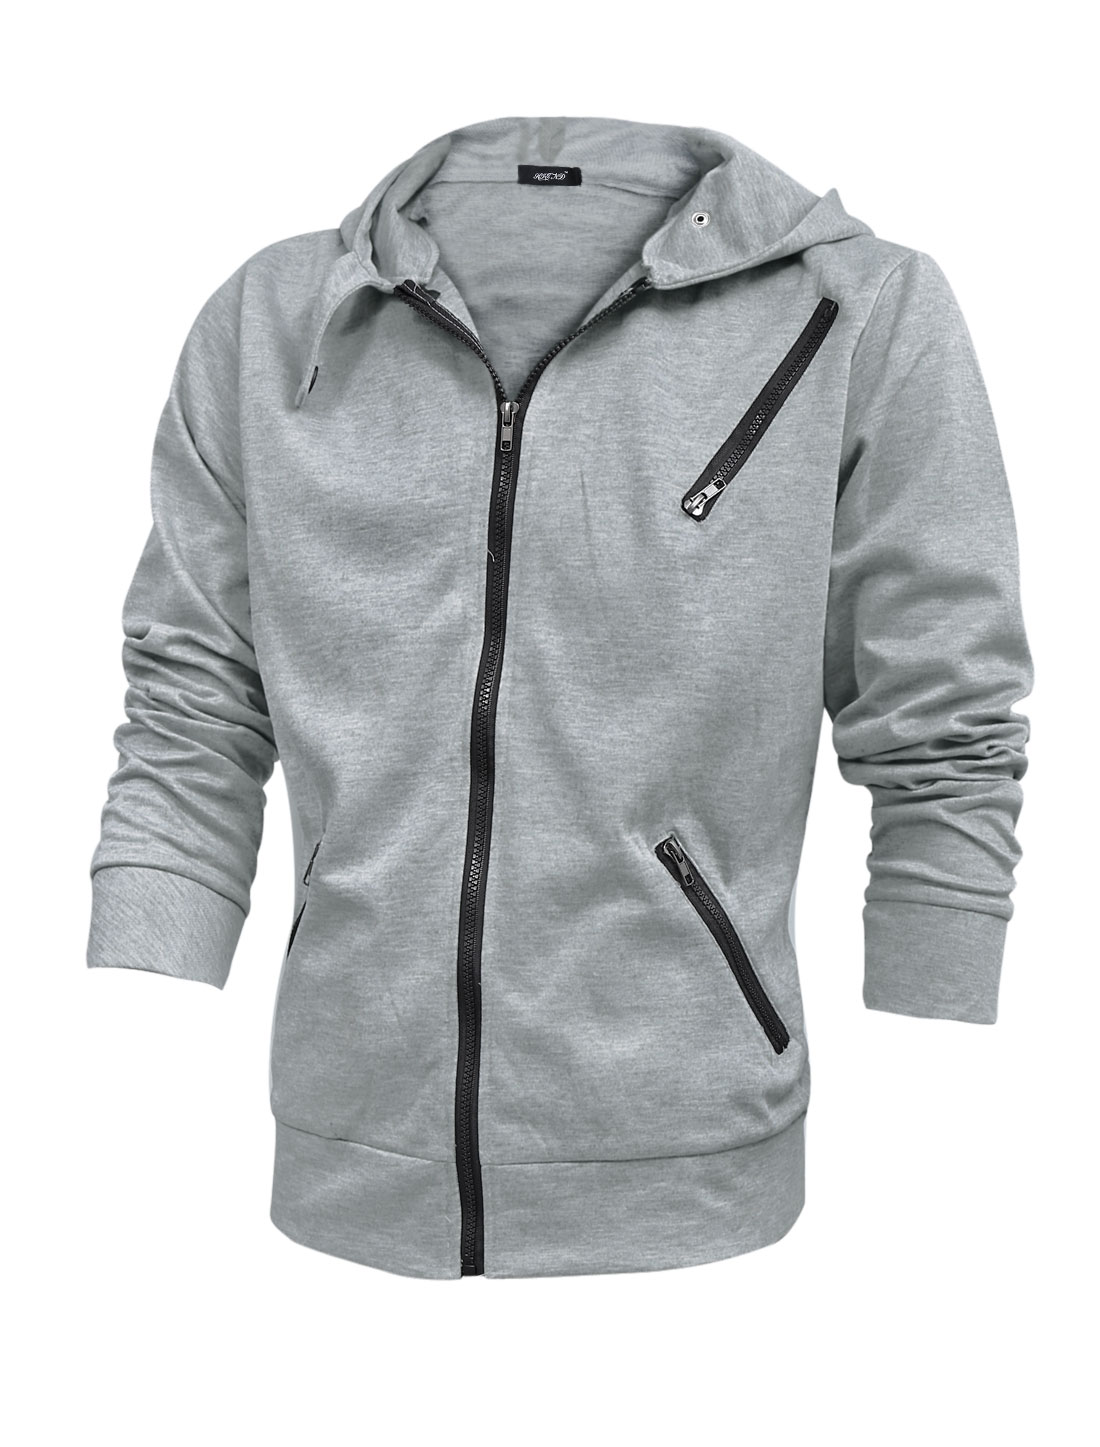 Men Long Sleeve Zipper Closed Pockets Zip Fly Hoodie Light Gray M